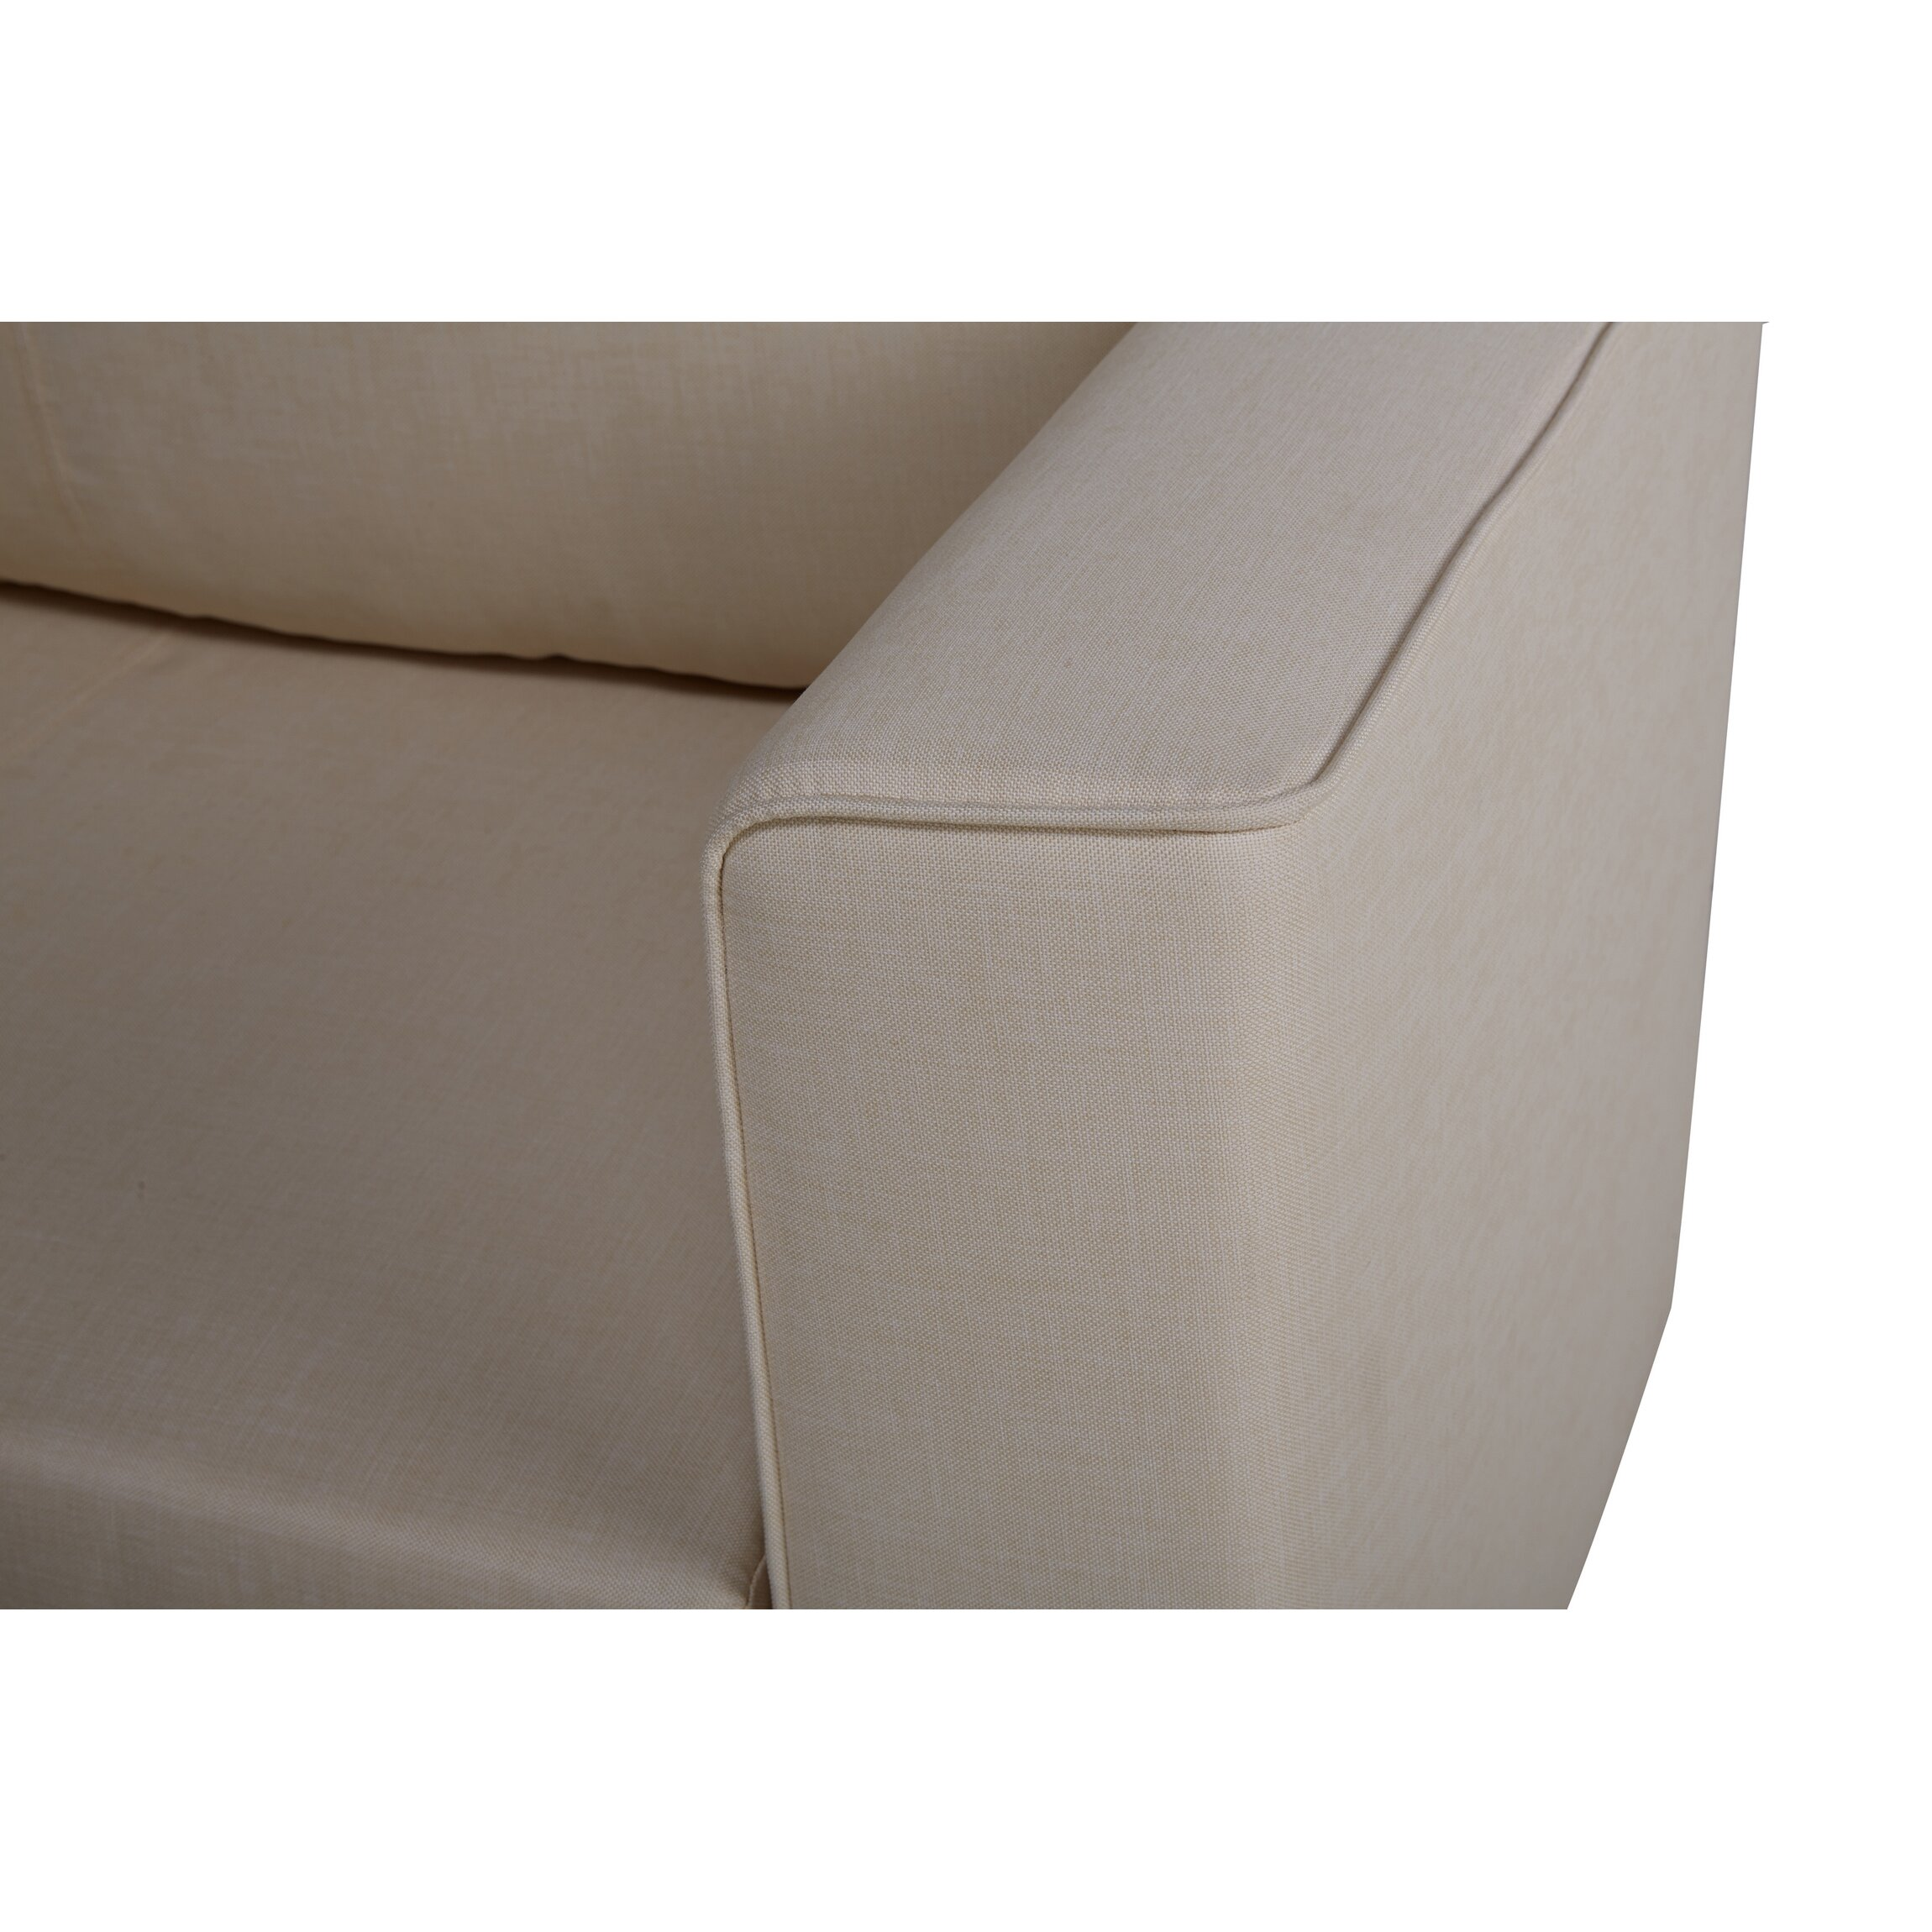 Fabulous Corona Convertible Loveseat Sleeper Varick Gallery Sansbury Caraccident5 Cool Chair Designs And Ideas Caraccident5Info